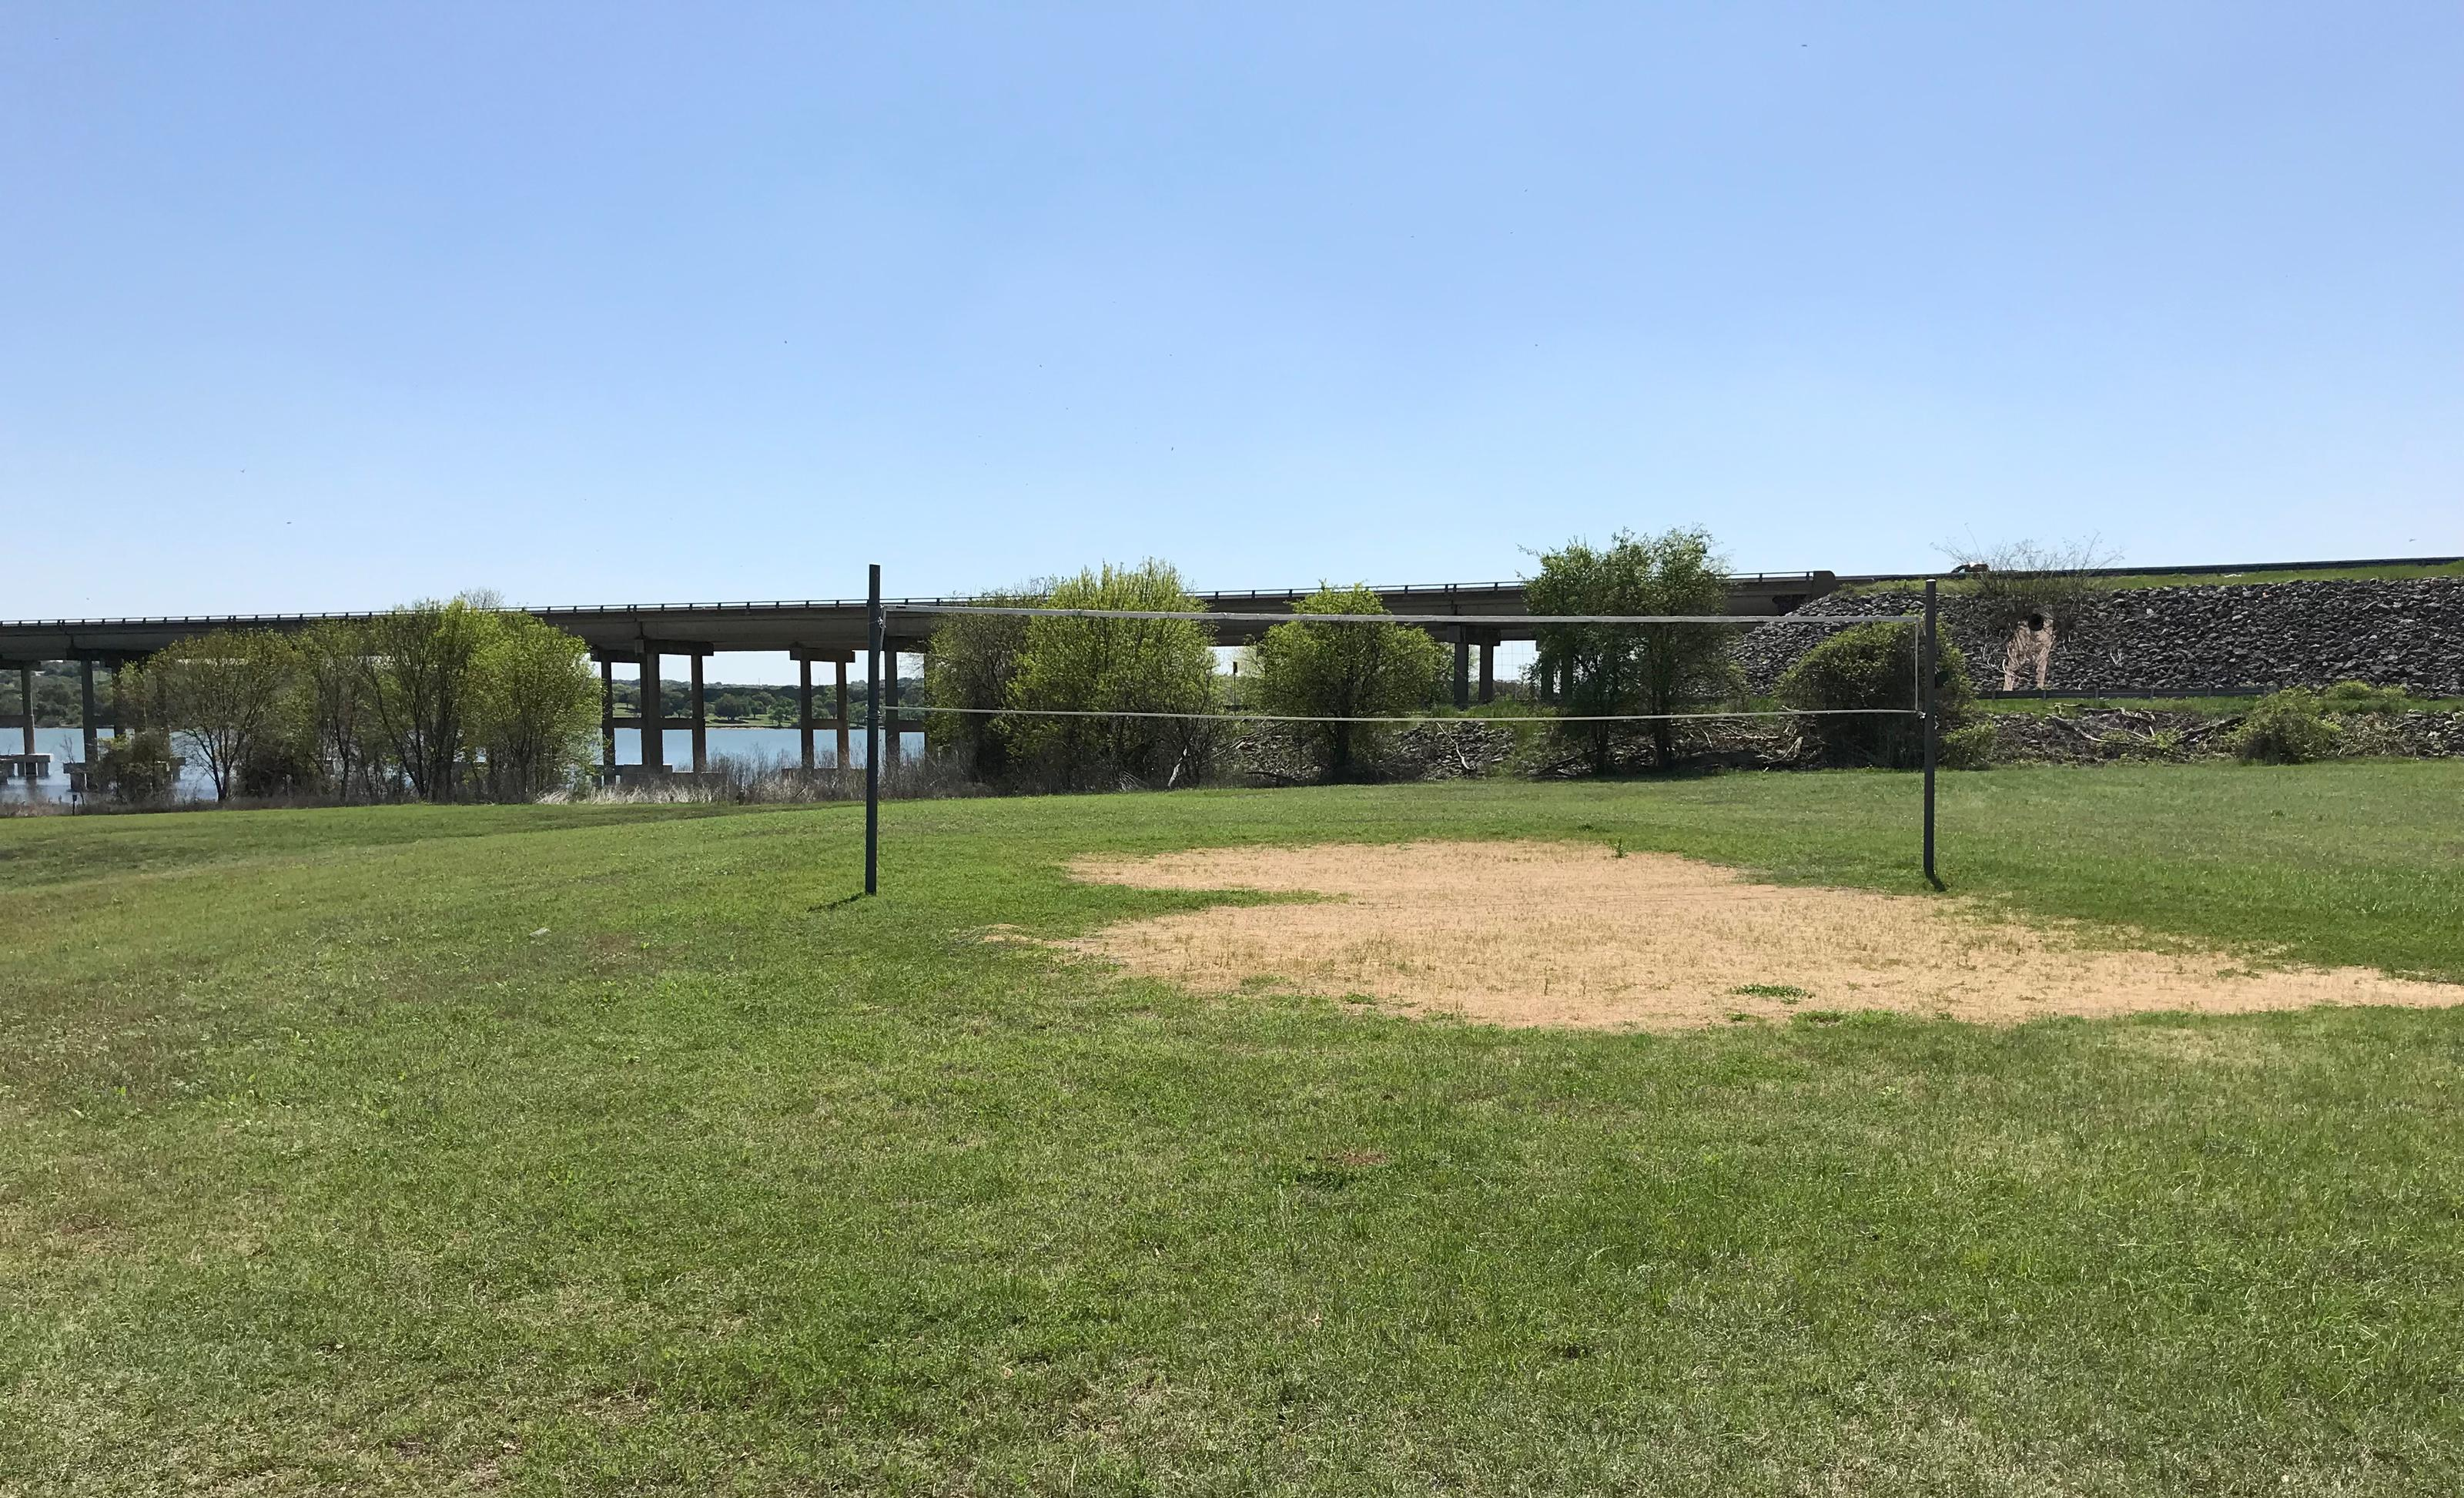 Sand volleyball court located in Group Shelter area